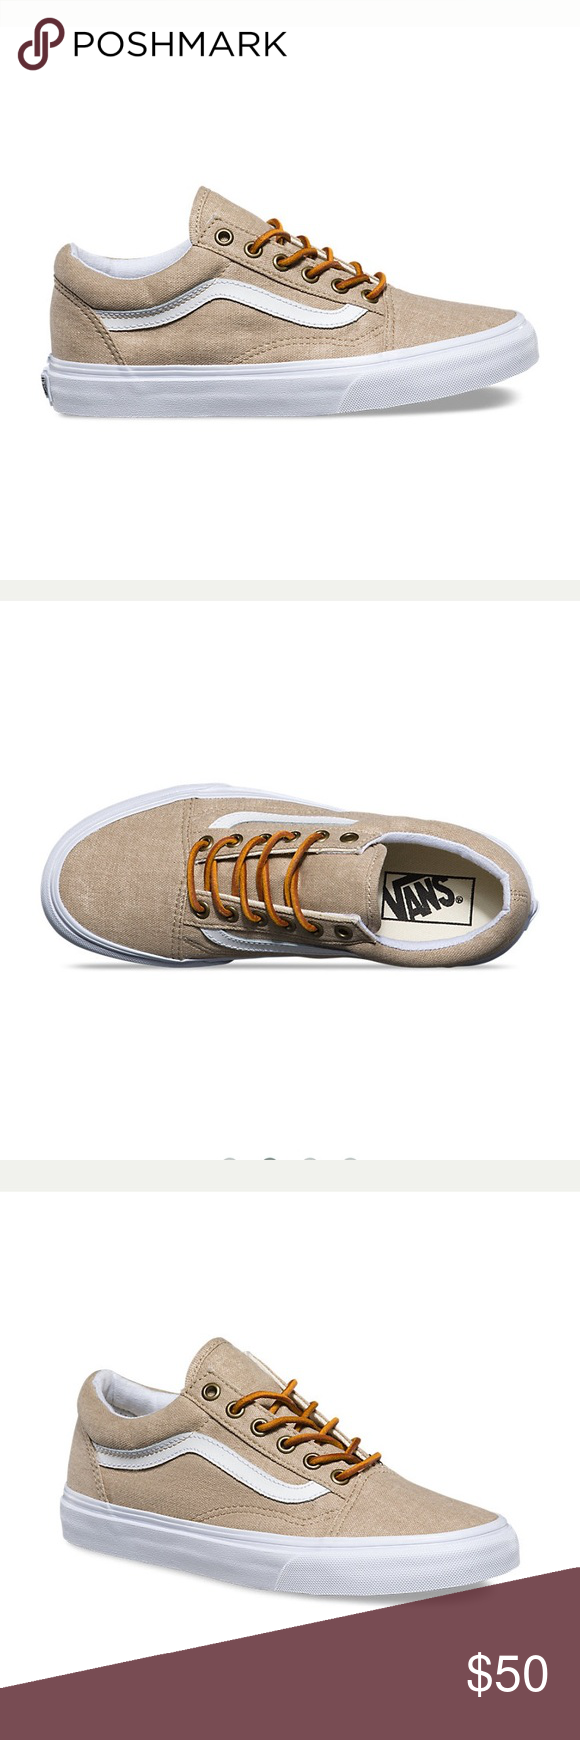 tan vans with leather laces \u003e Clearance